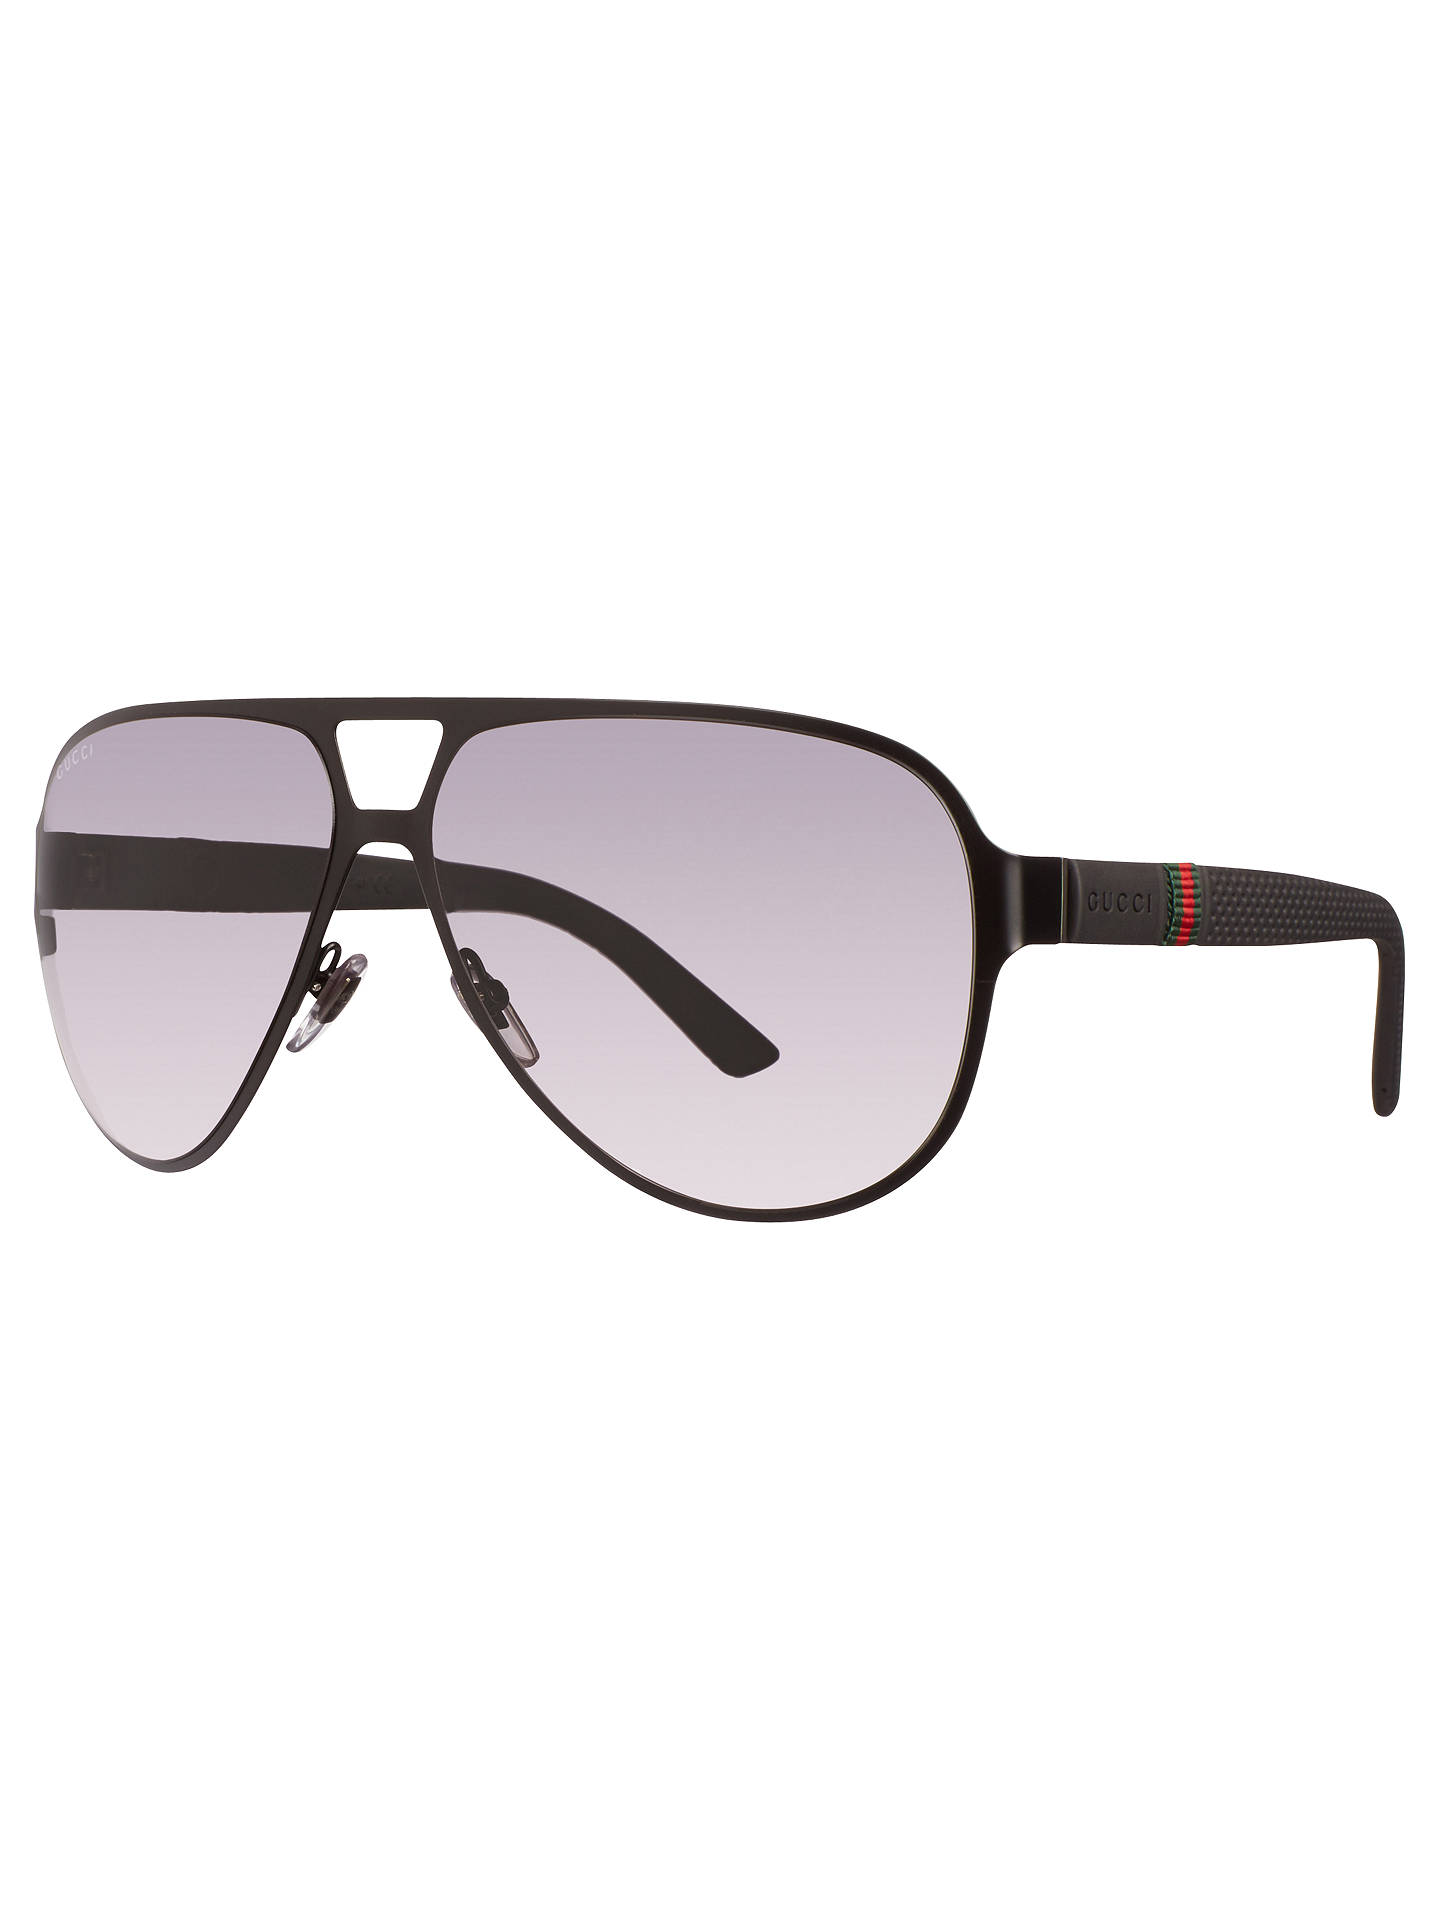 11d64686397 Gucci GG2252 S Matte Sunglasses at John Lewis   Partners